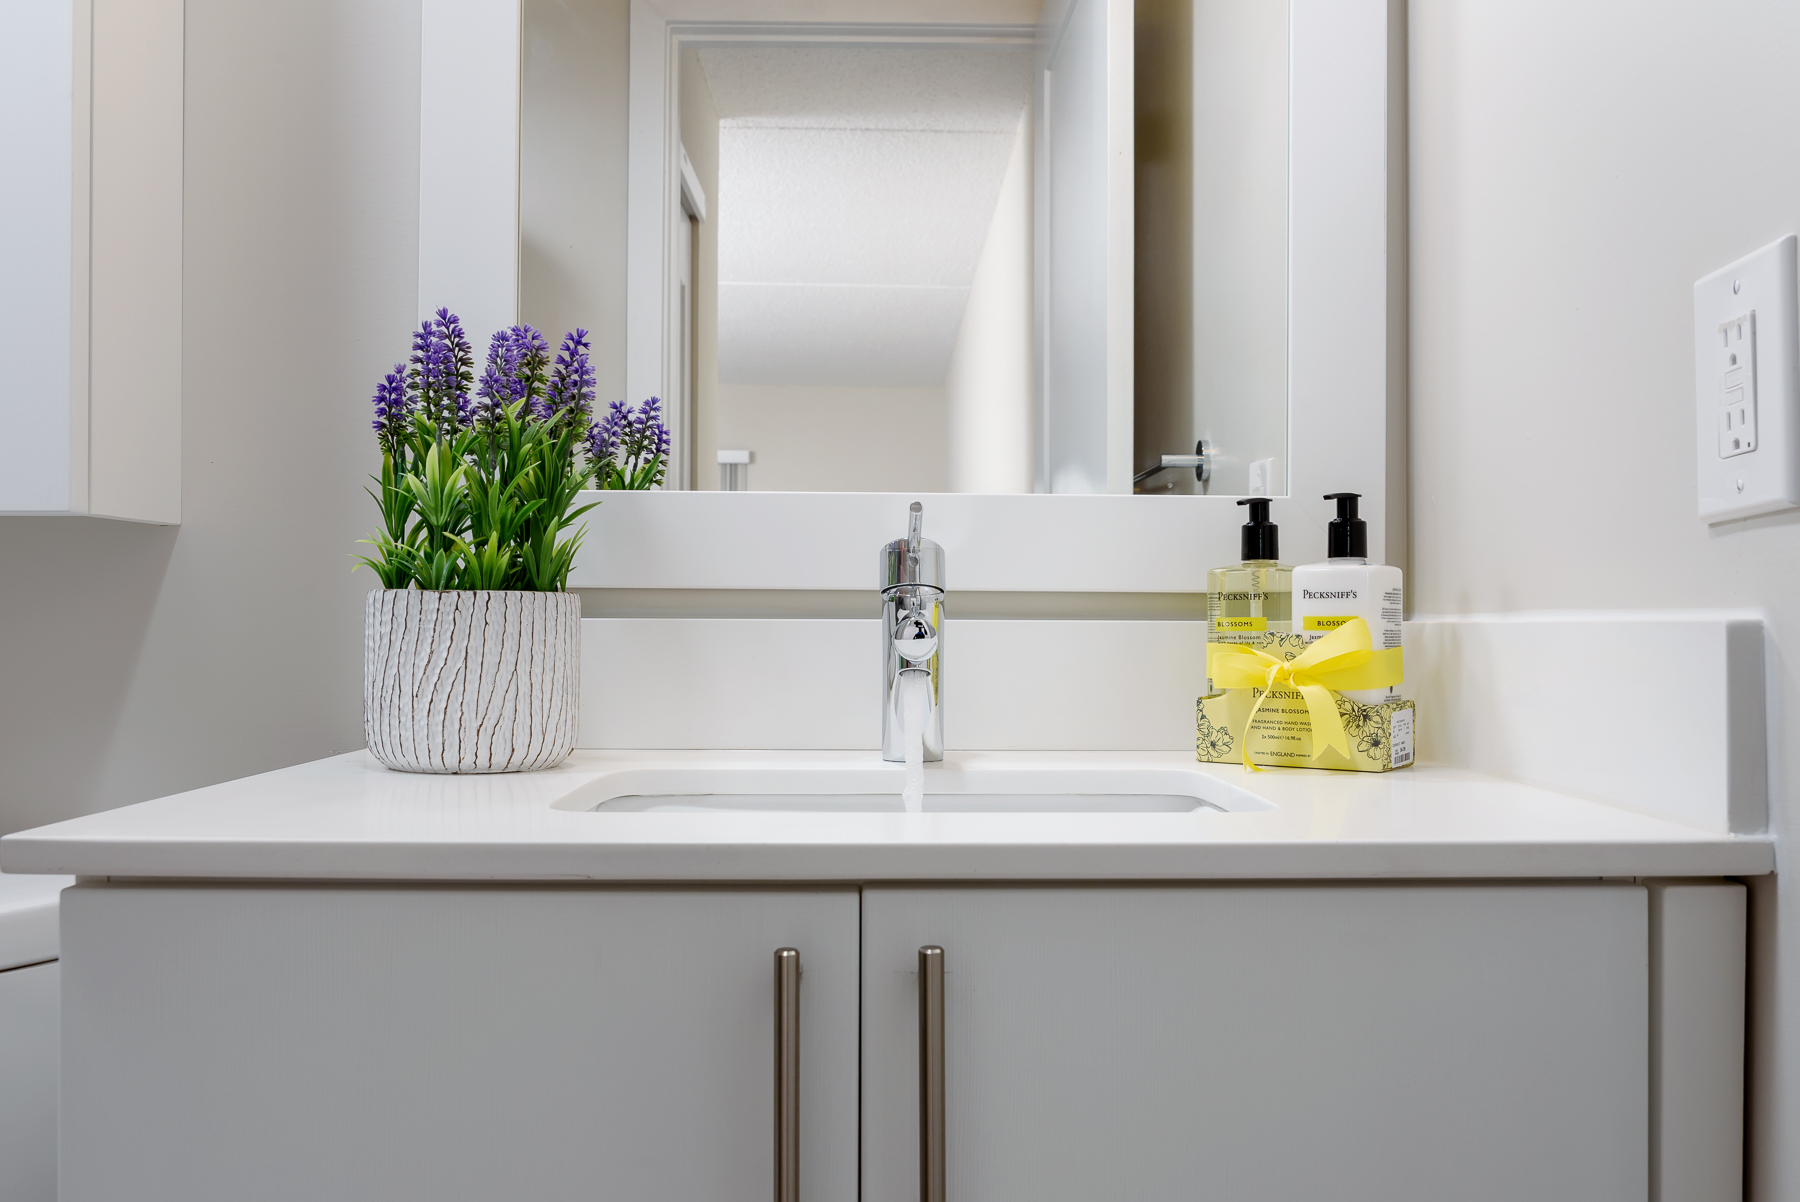 bathroom sink and vanity in King of Prussia apartment at Valley Forge Towers